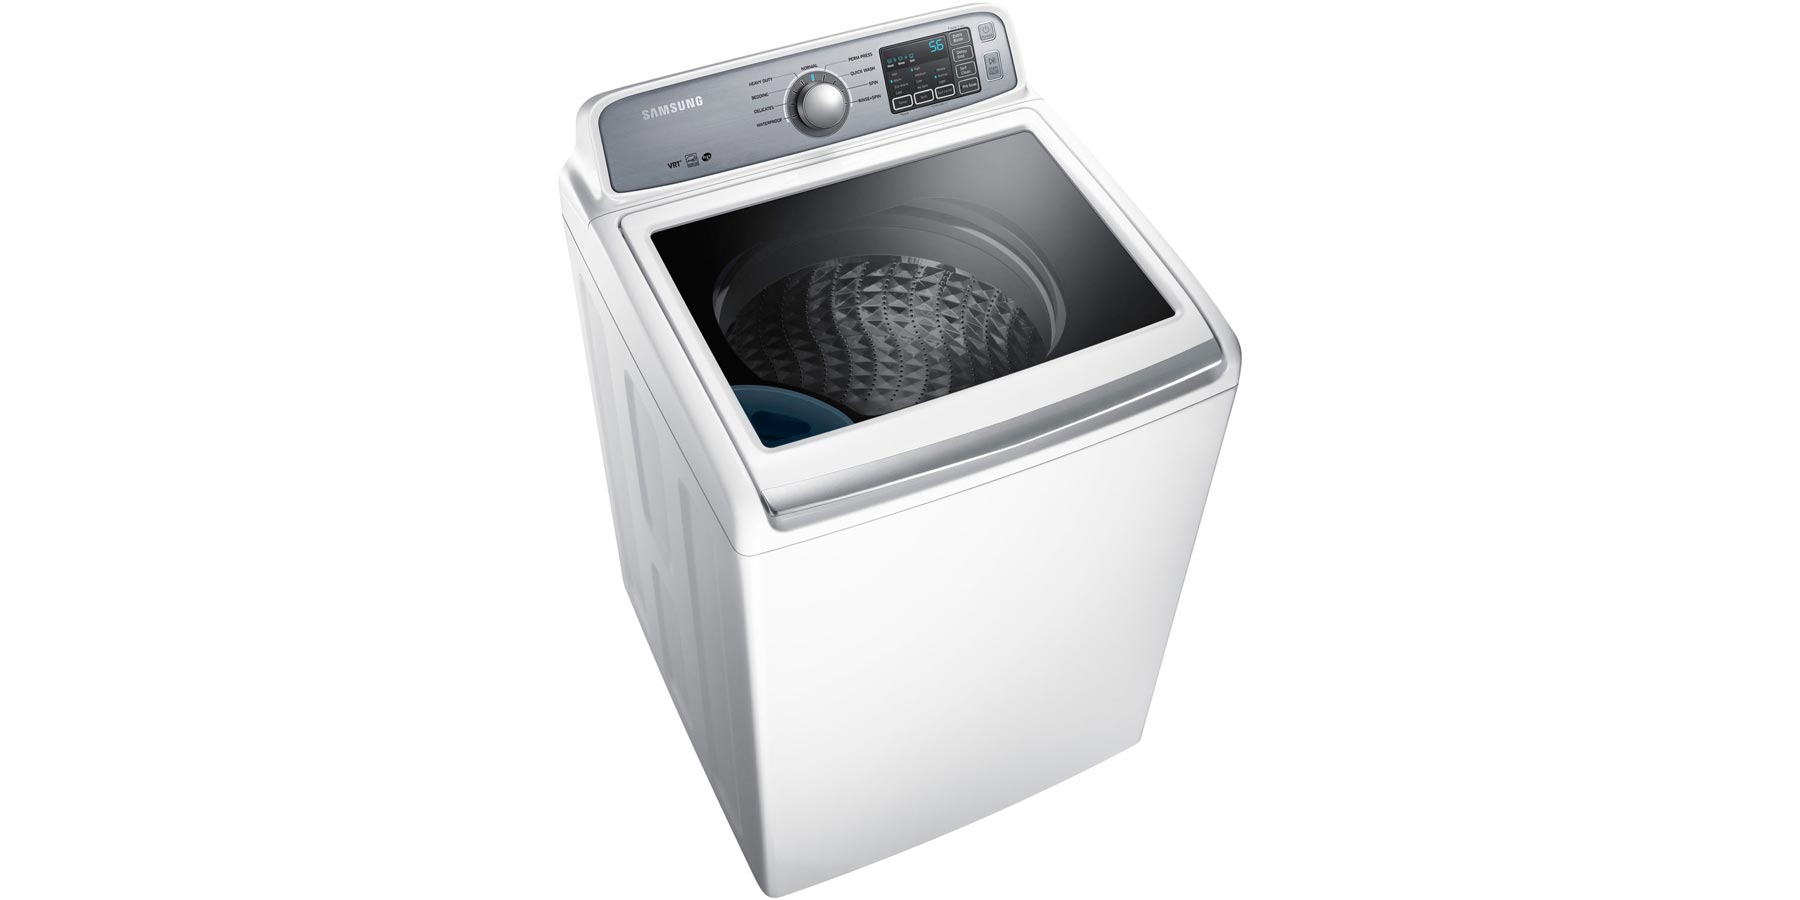 samsung 4.5-cu ft high-efficiency top-load washer manual